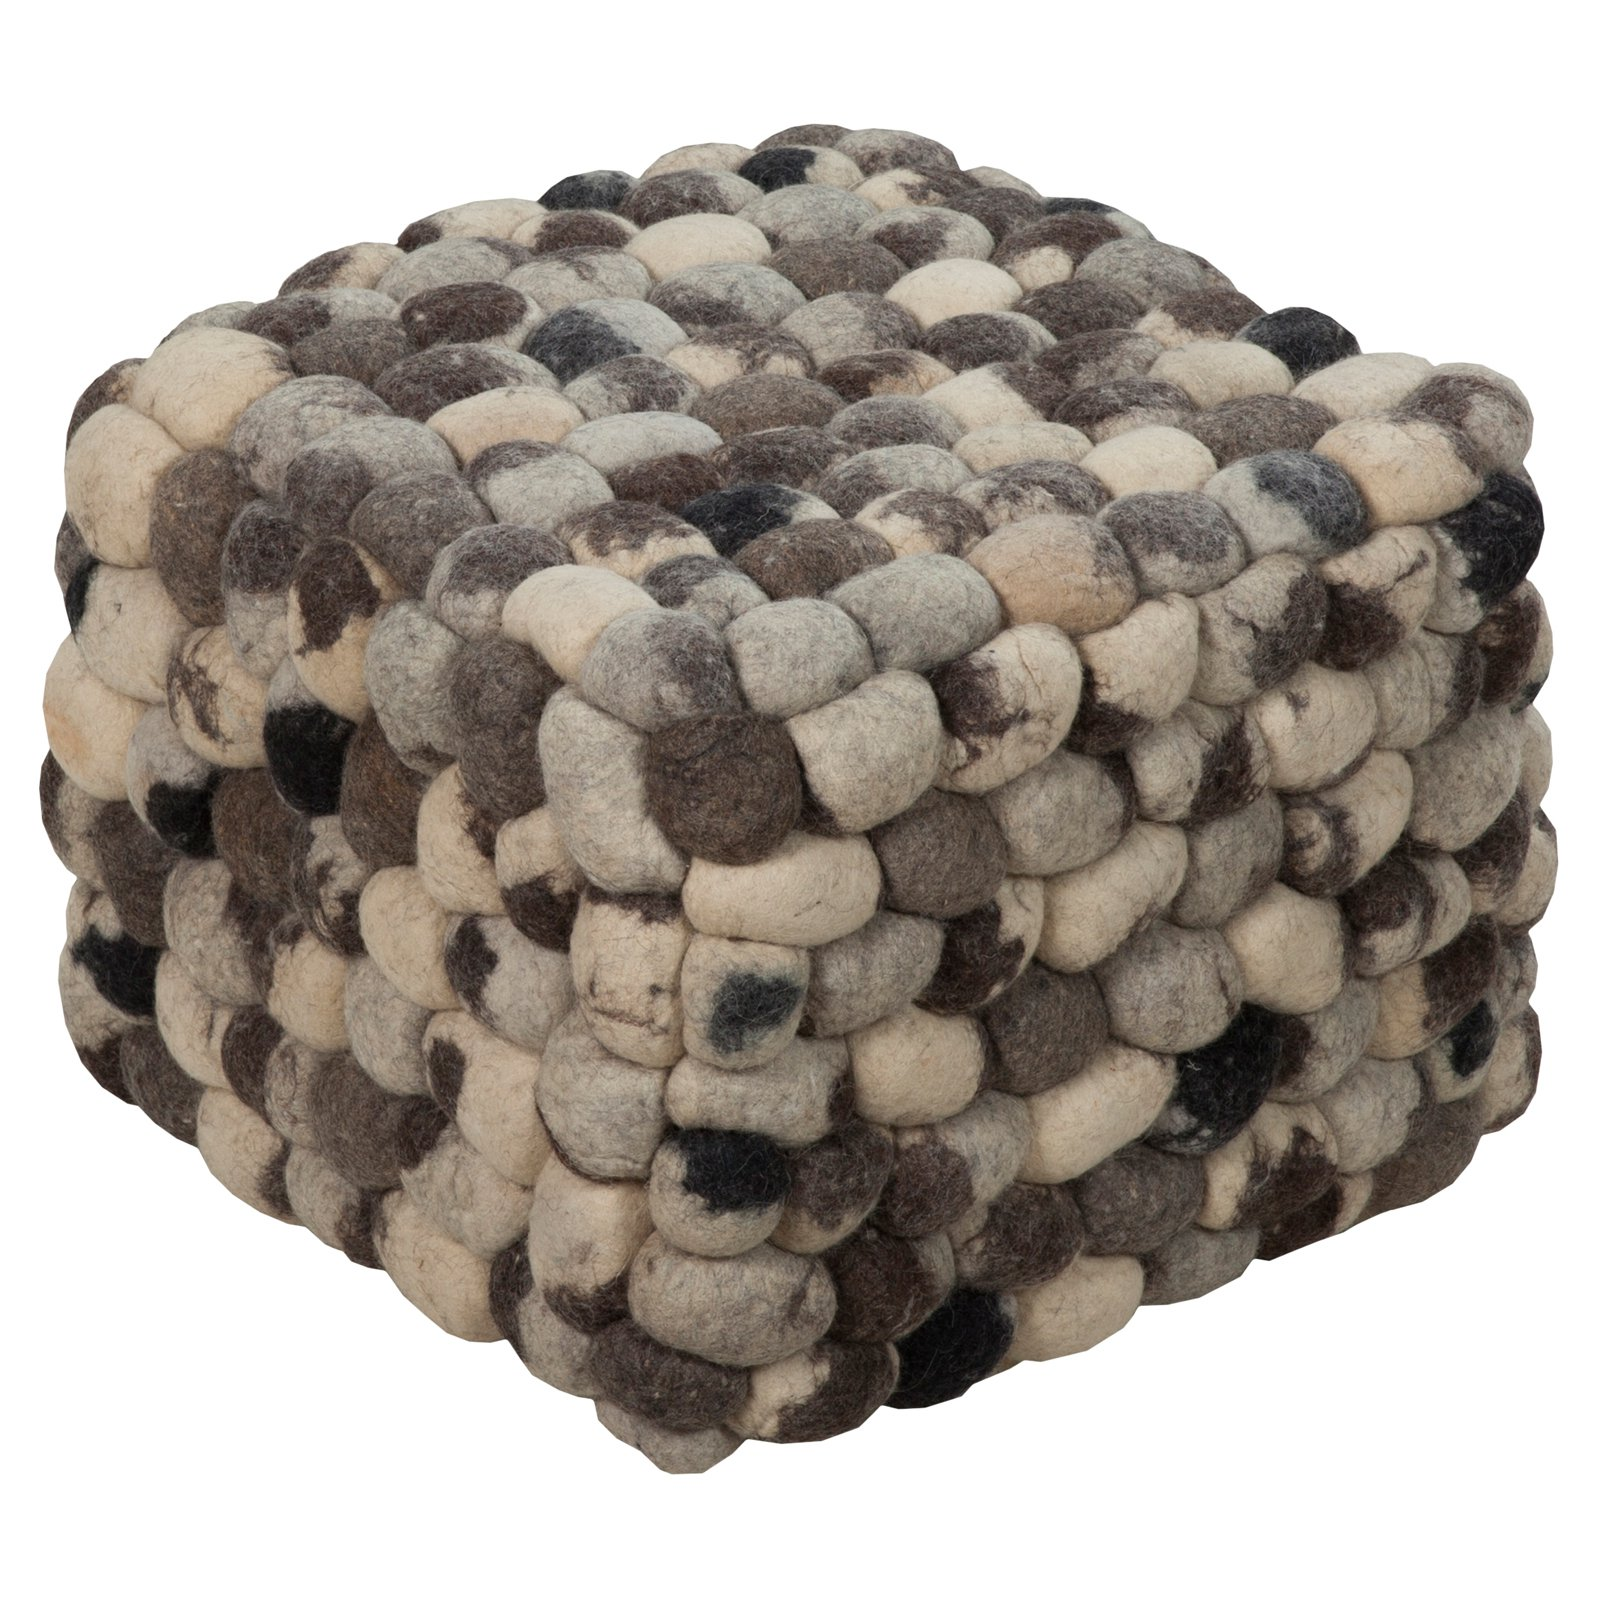 Surya 18 in. Pebble Square Wool Ottoman Dark Lavender Gray by Surya Rugs